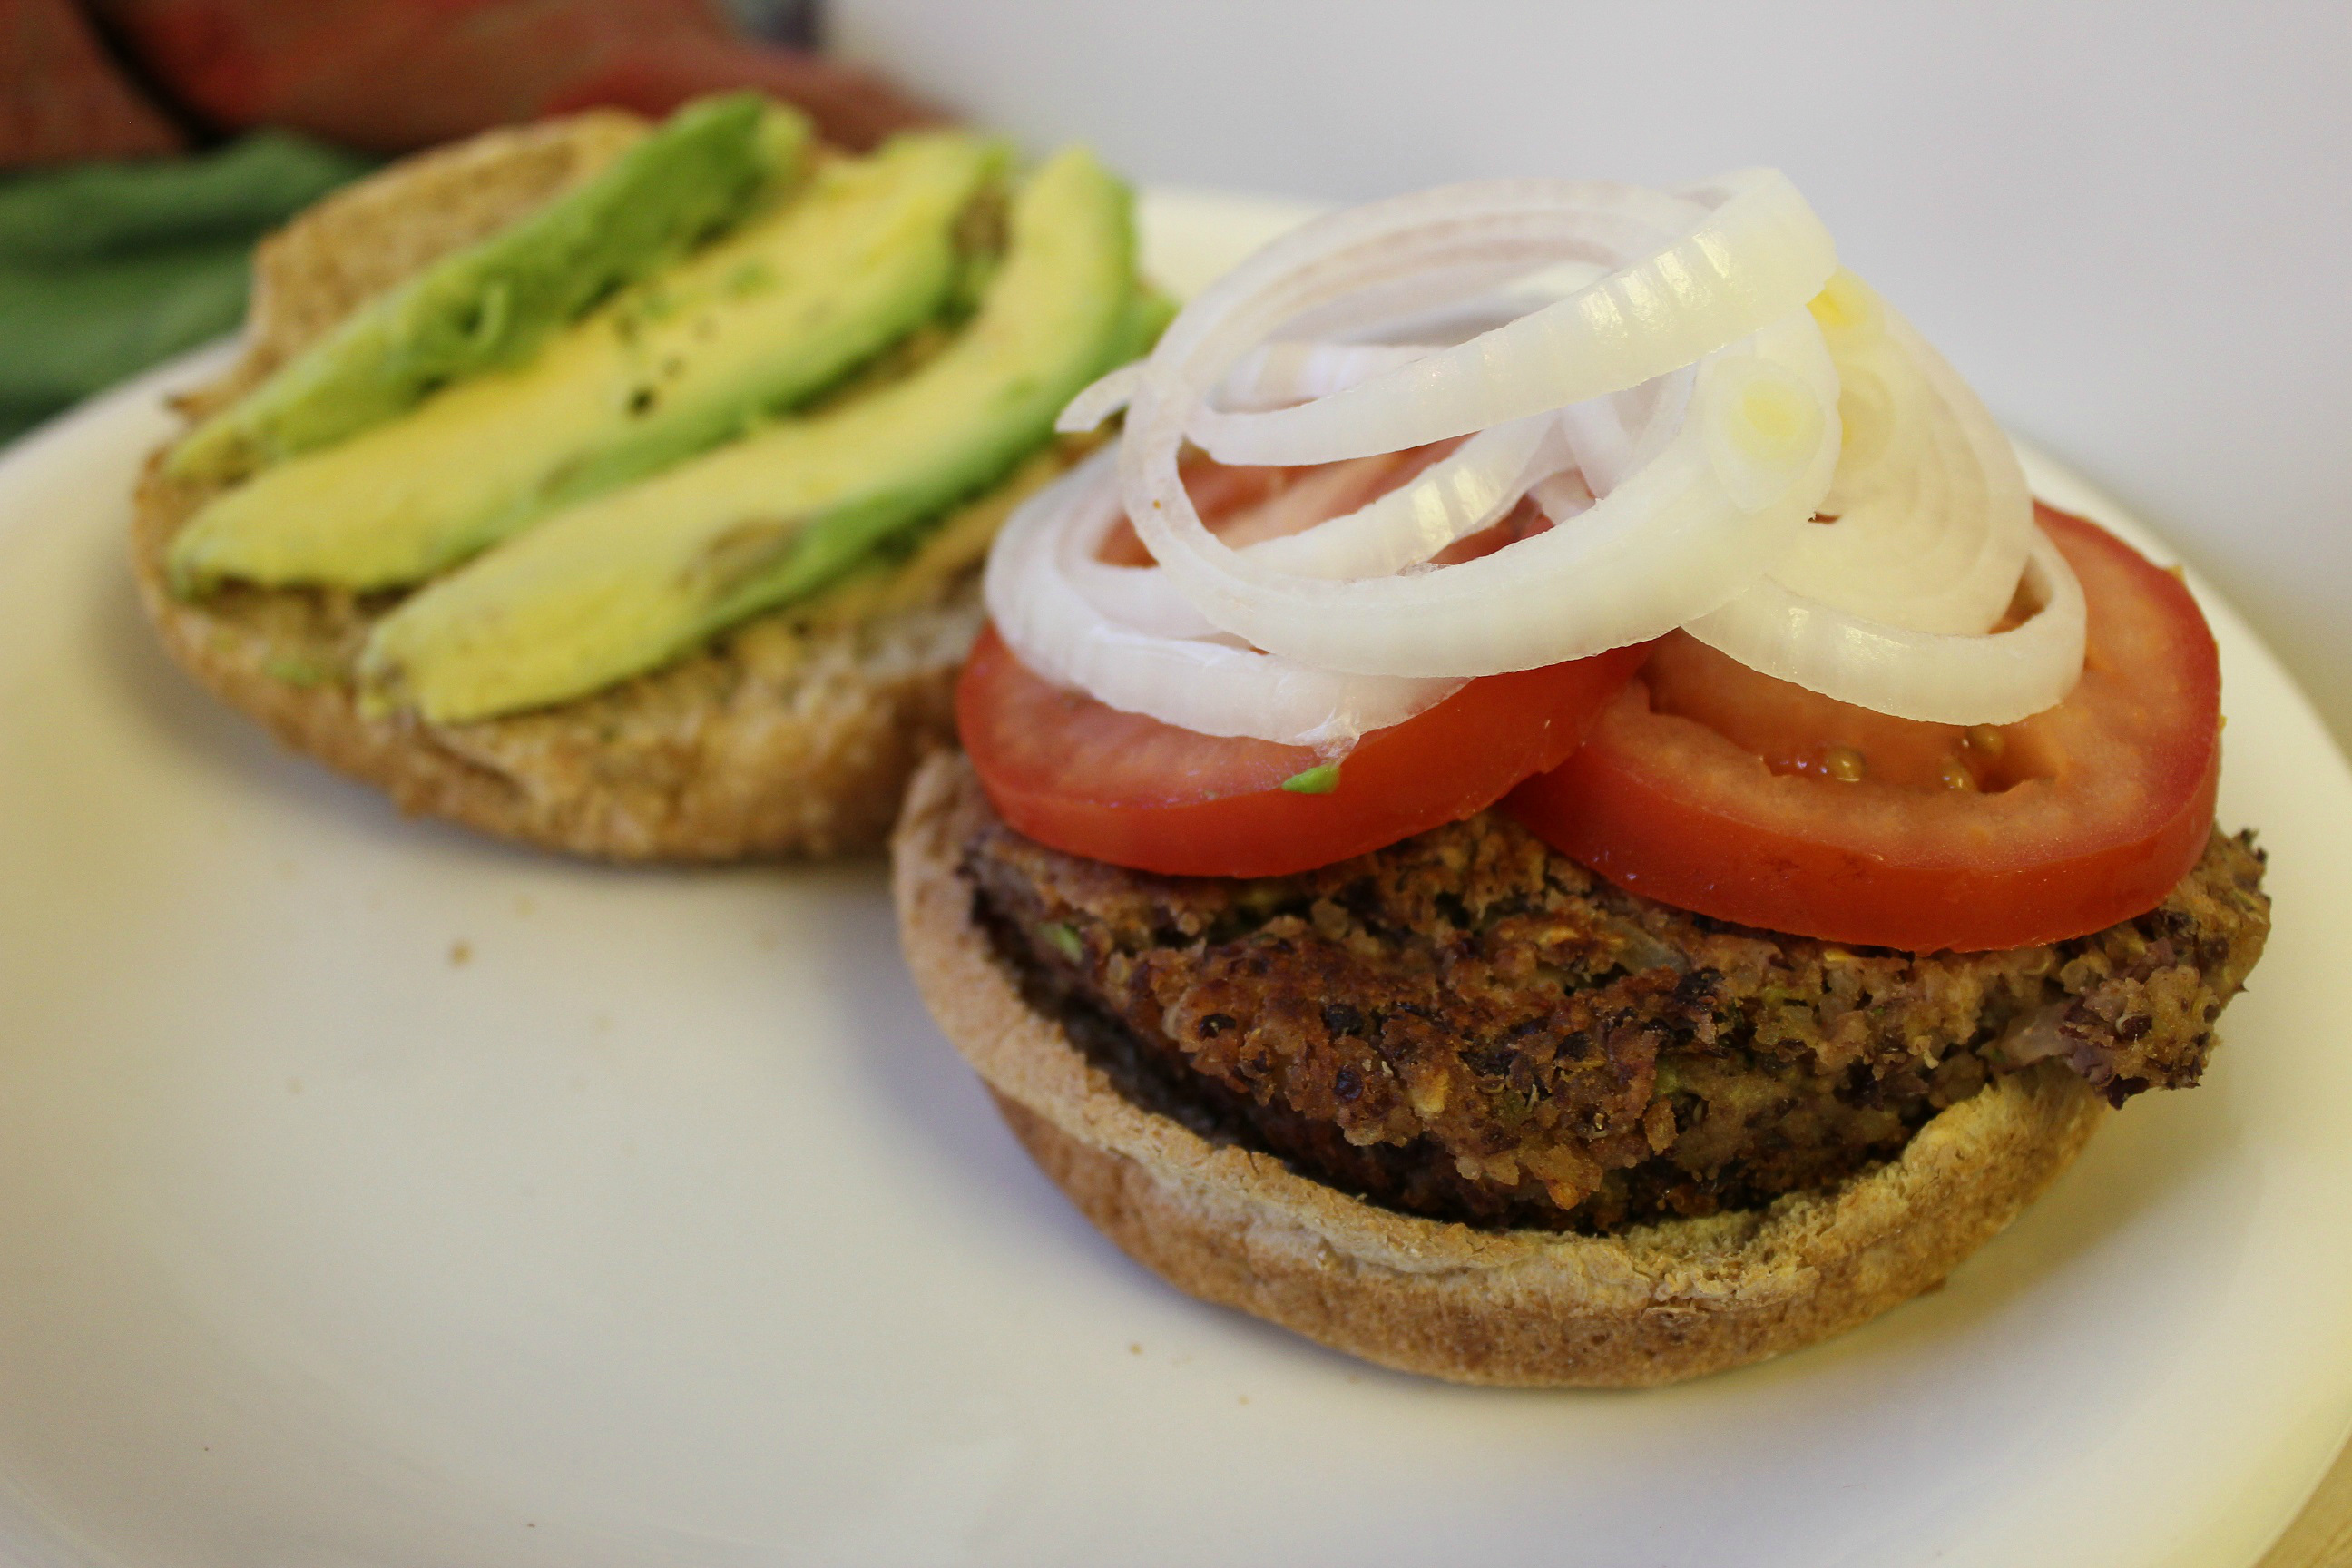 Here's a great burger option for the vegetarian at your barbecue! This BBQ Kidney Bean Quinoa Burger is vegan and full of veggie goodness.